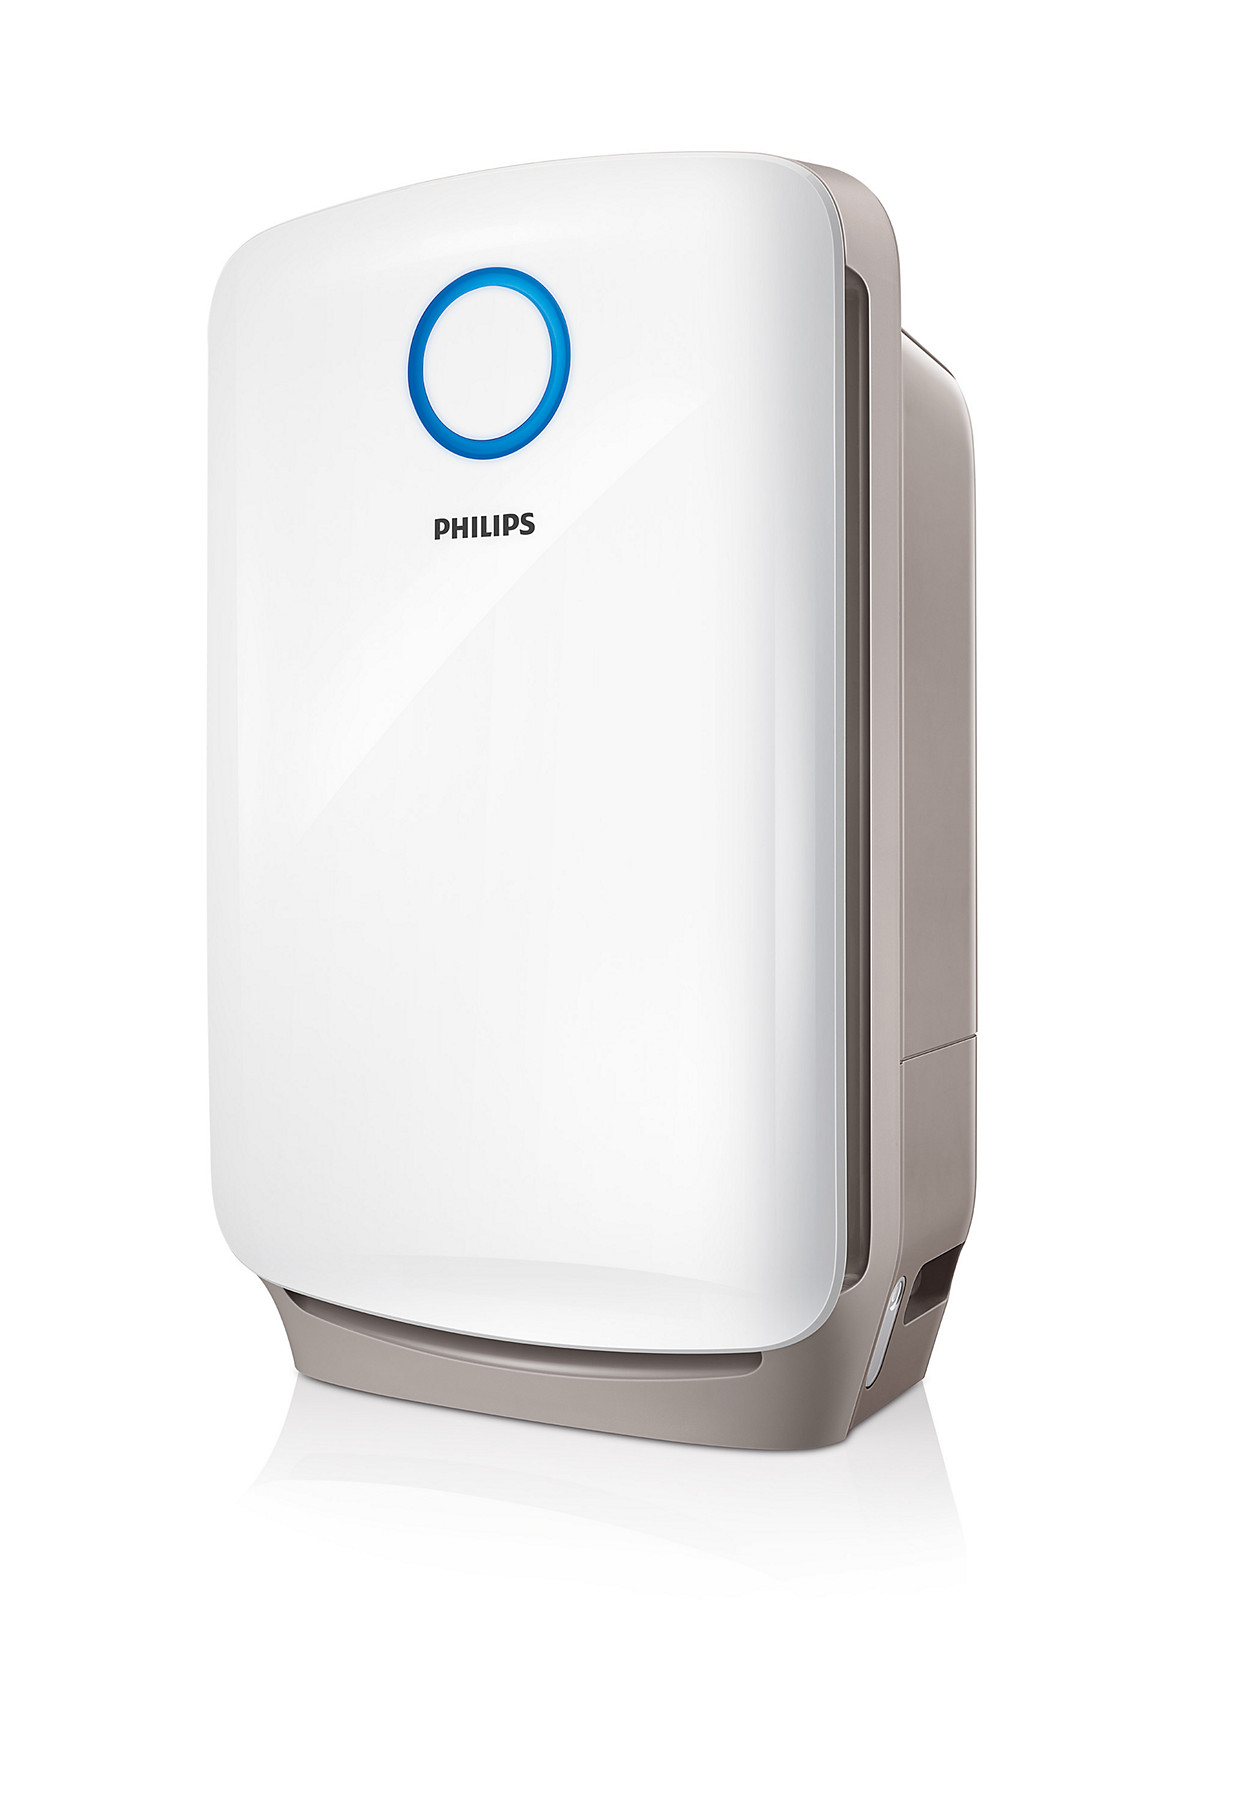 http://images.philips.com/is/image/PhilipsConsumer/AC4080_10-IMS-de_DE?wid=1250&$jpgsmall$